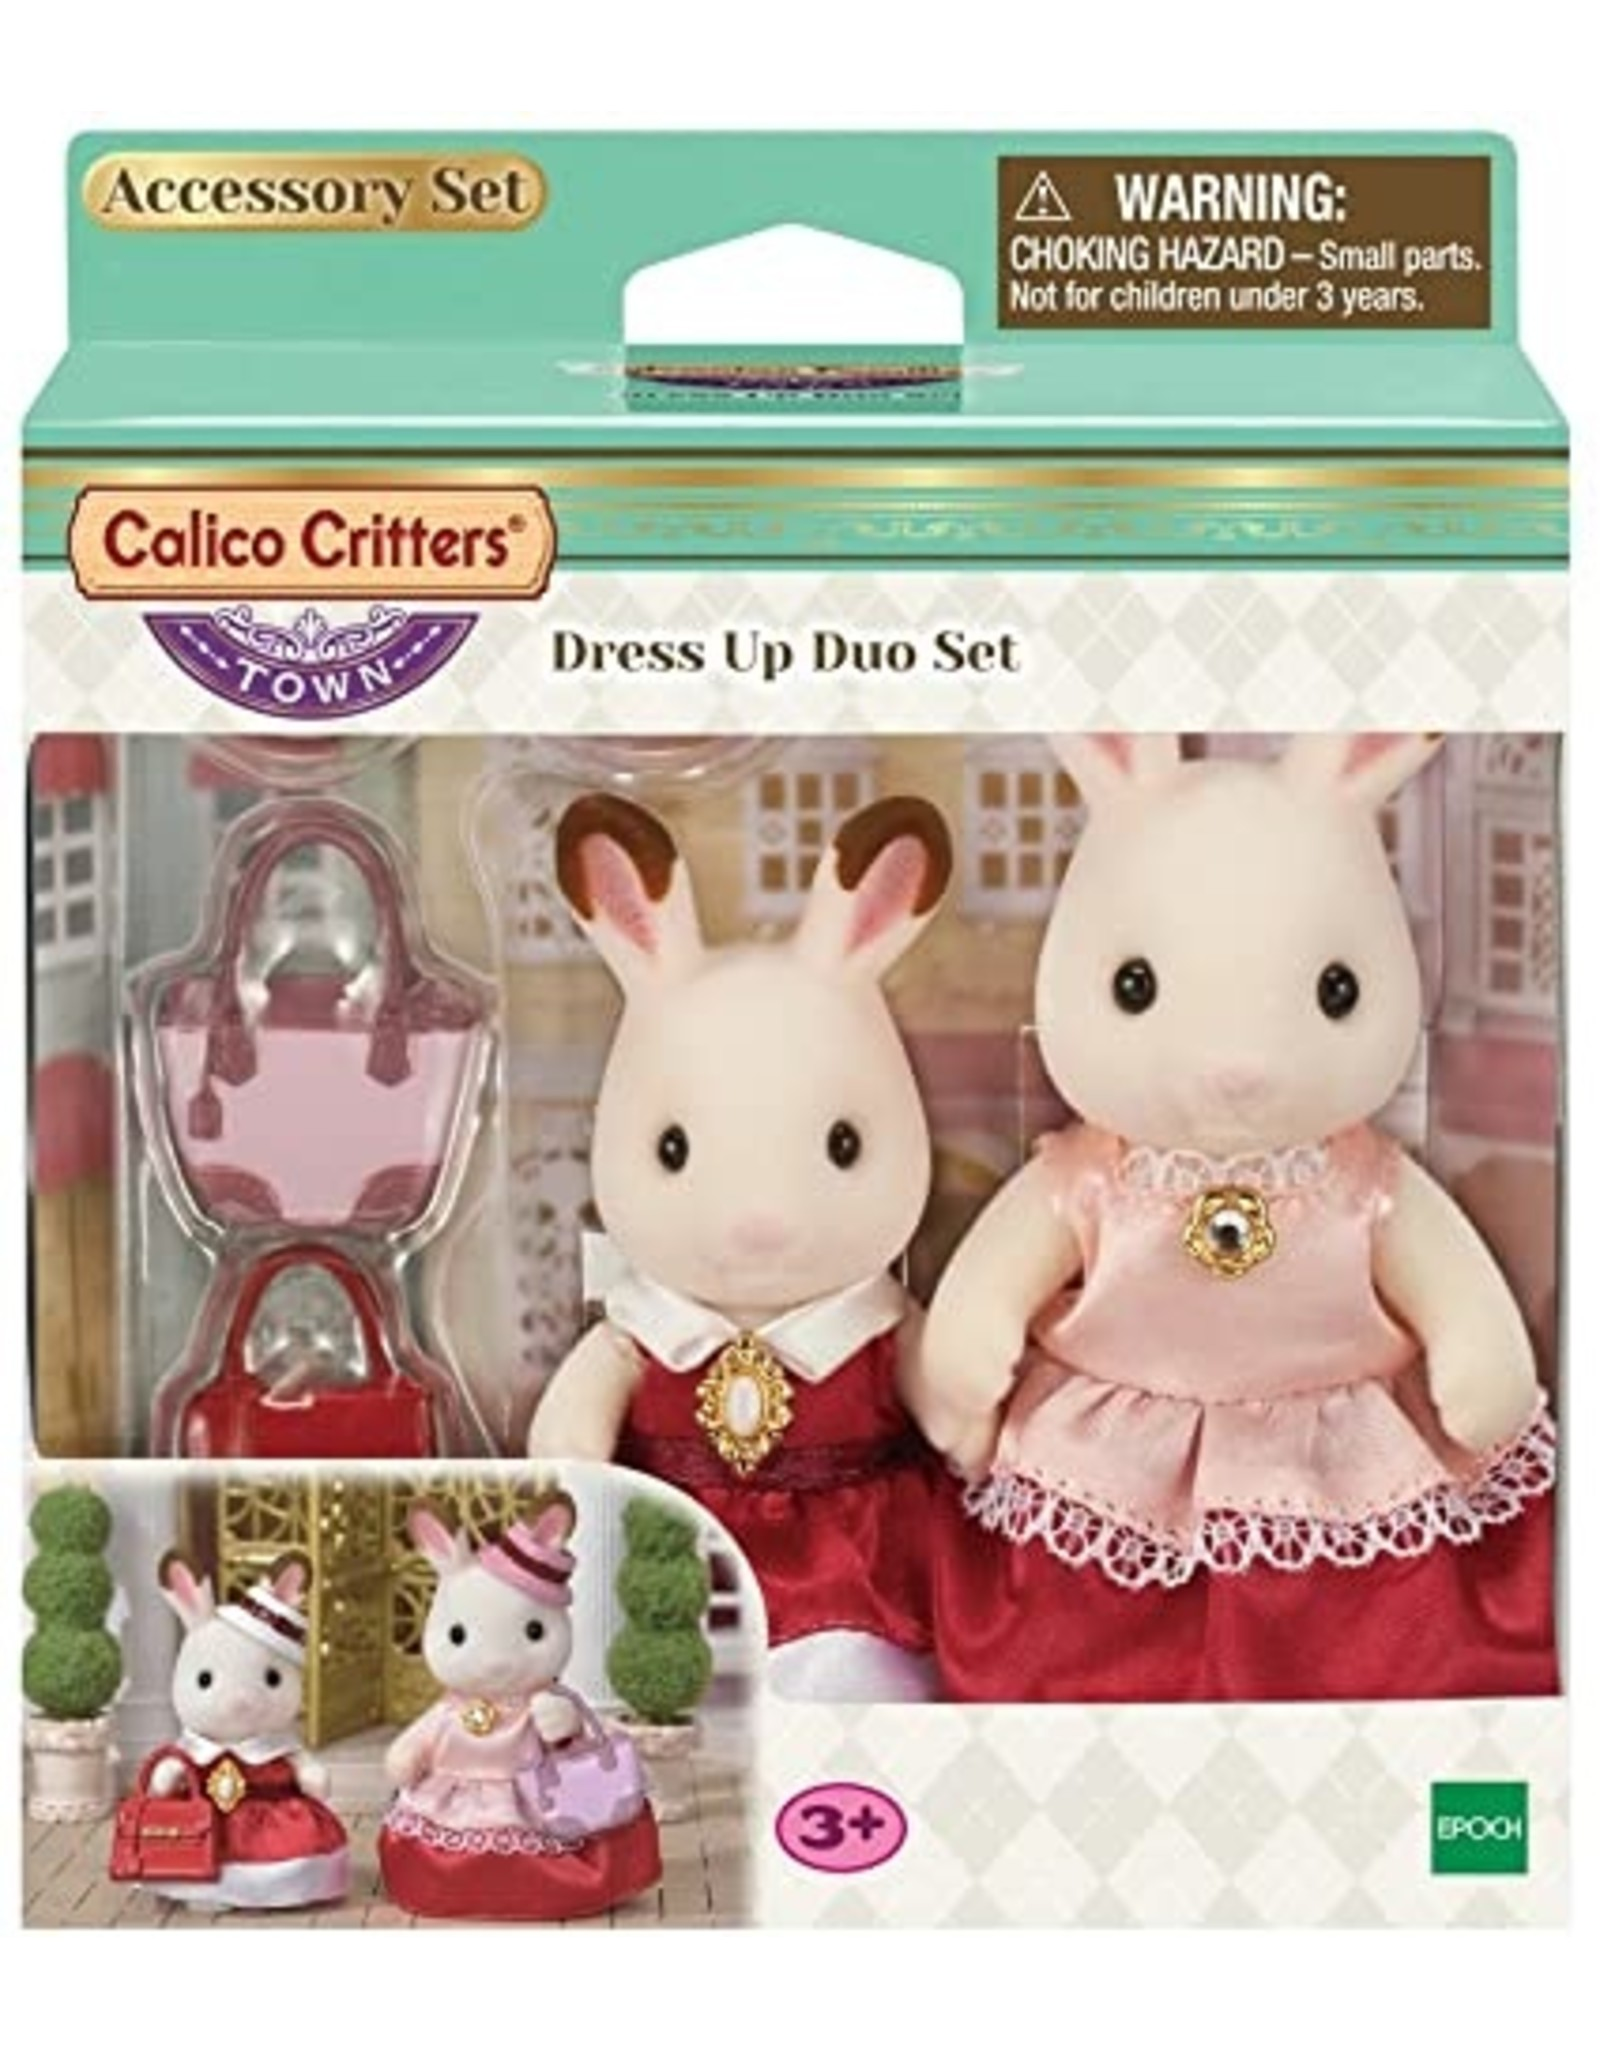 Calico Critters Calico Critters Dress Up Duo Set